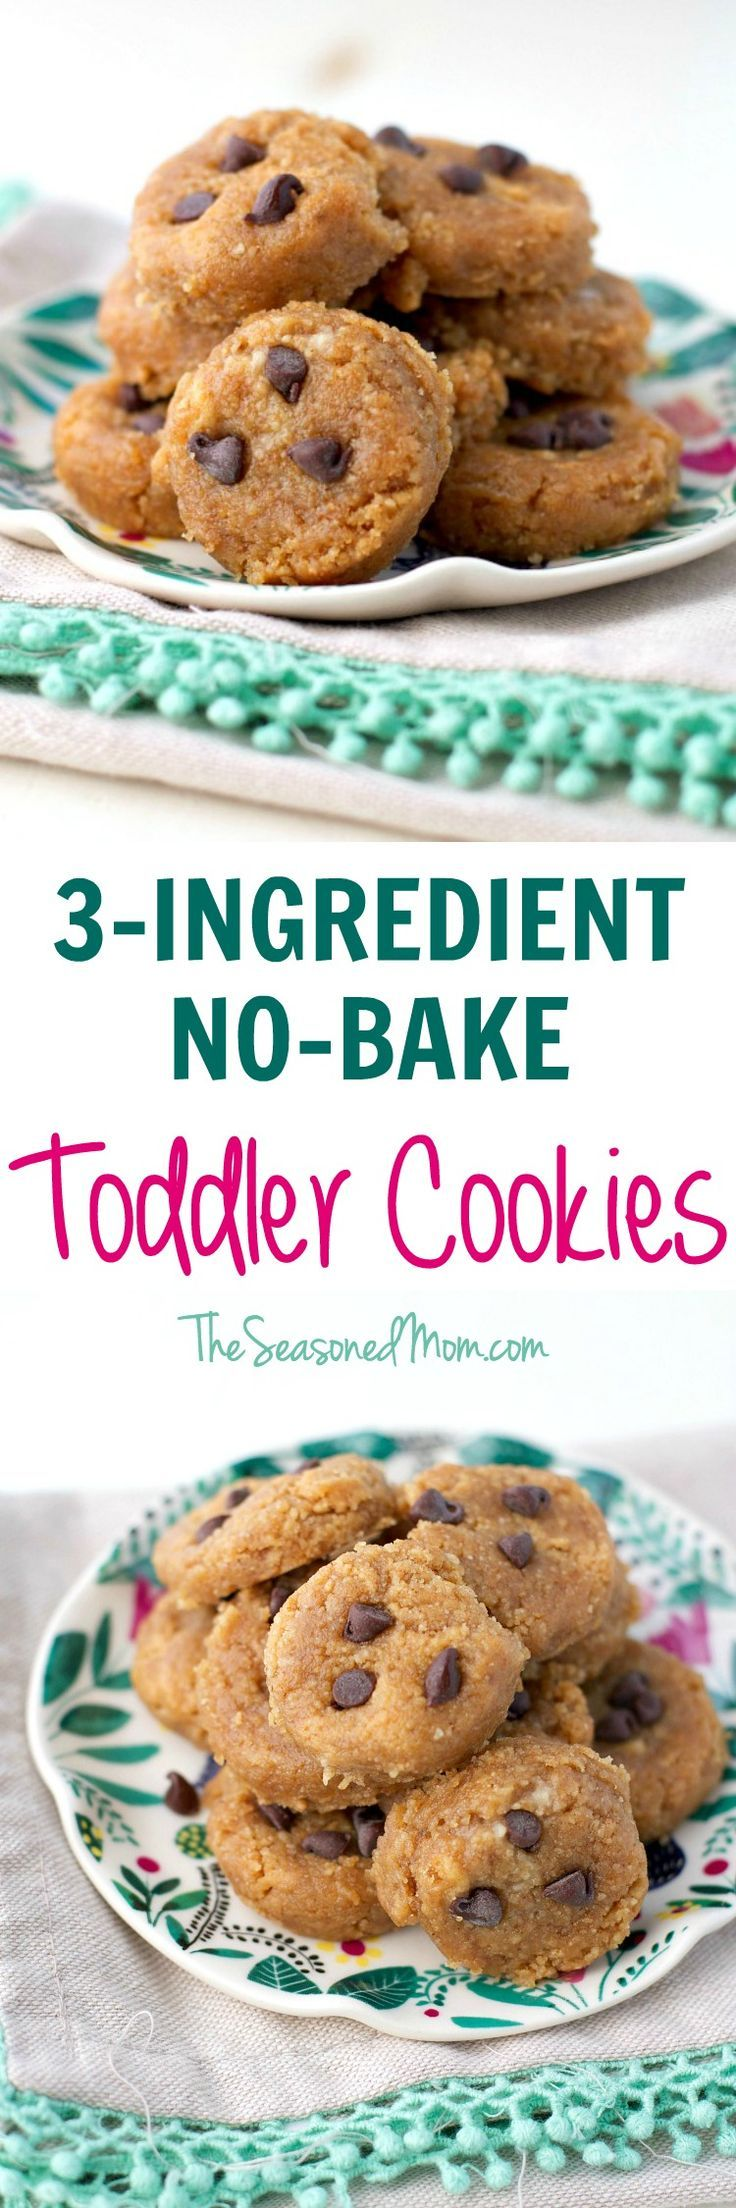 With just graham crackers, banana, and peanut butter, these 3-Ingredient No Bake Toddler Cookies are a perfect make-ahead option for lunch boxes, picnics, and summer travel. #horizonorganic /horizonorganic/ #ad